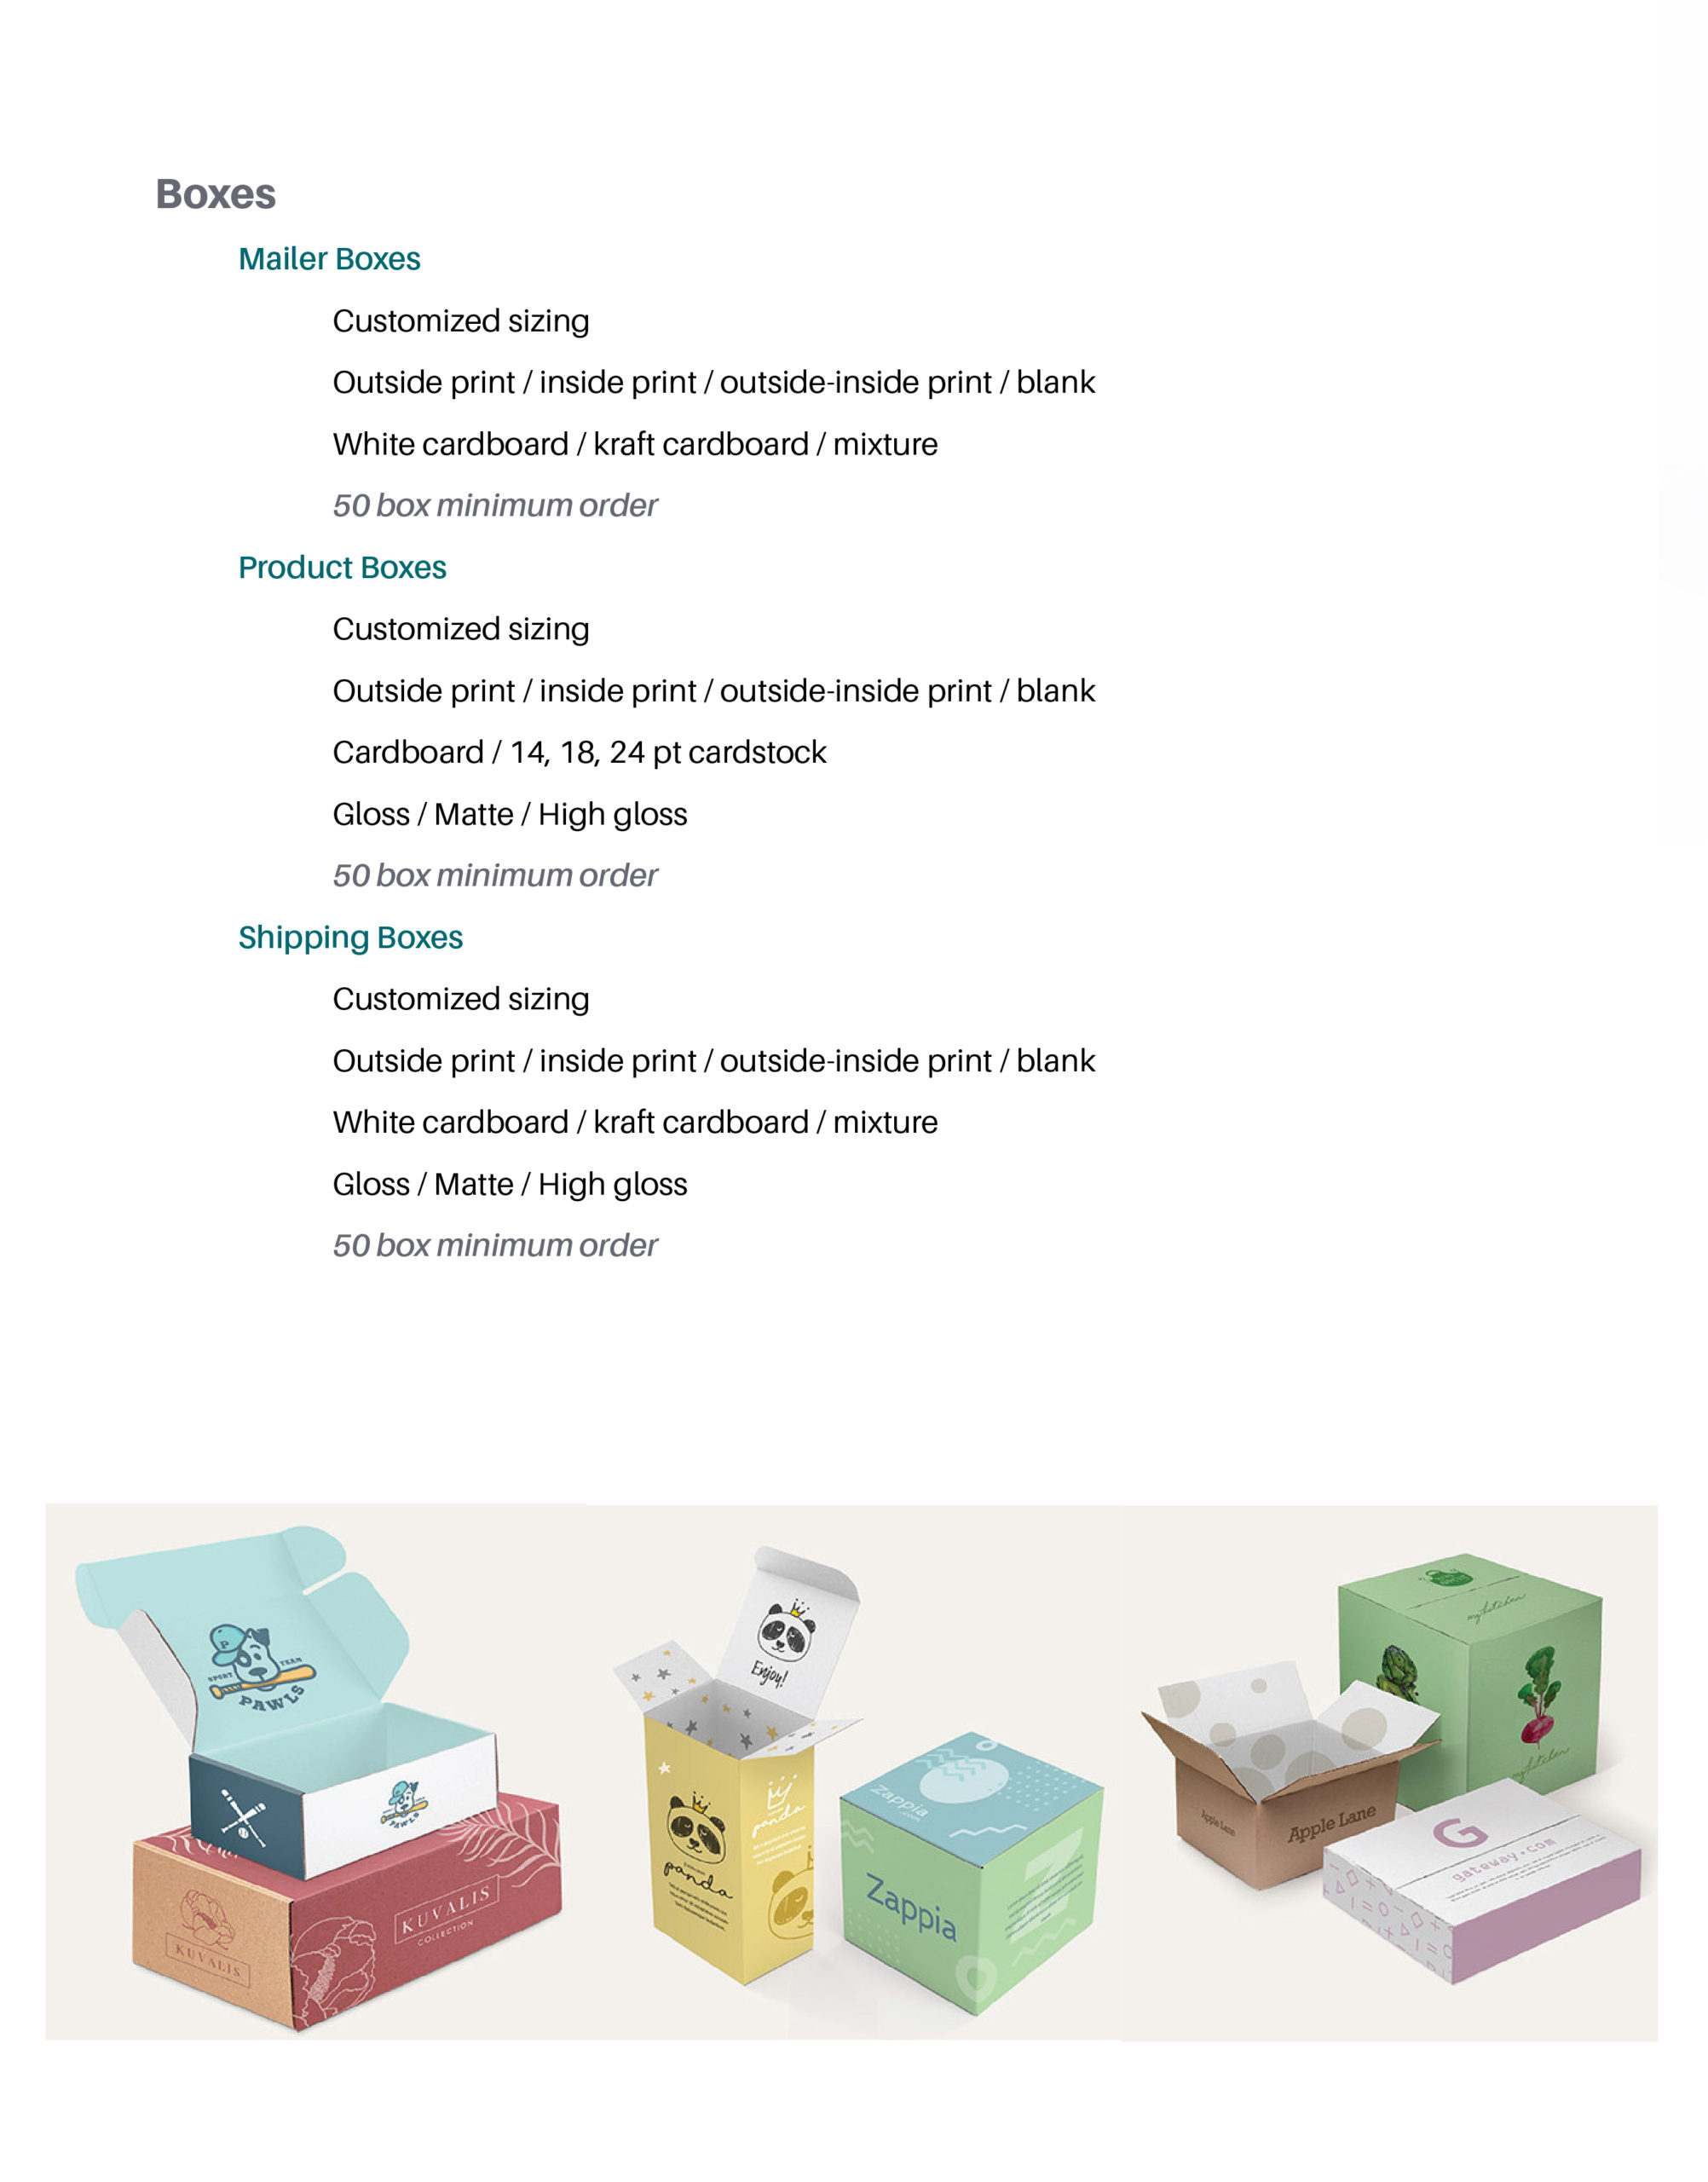 Page featuring product details on: mailer boxes, product boxes, and shipping boxes.